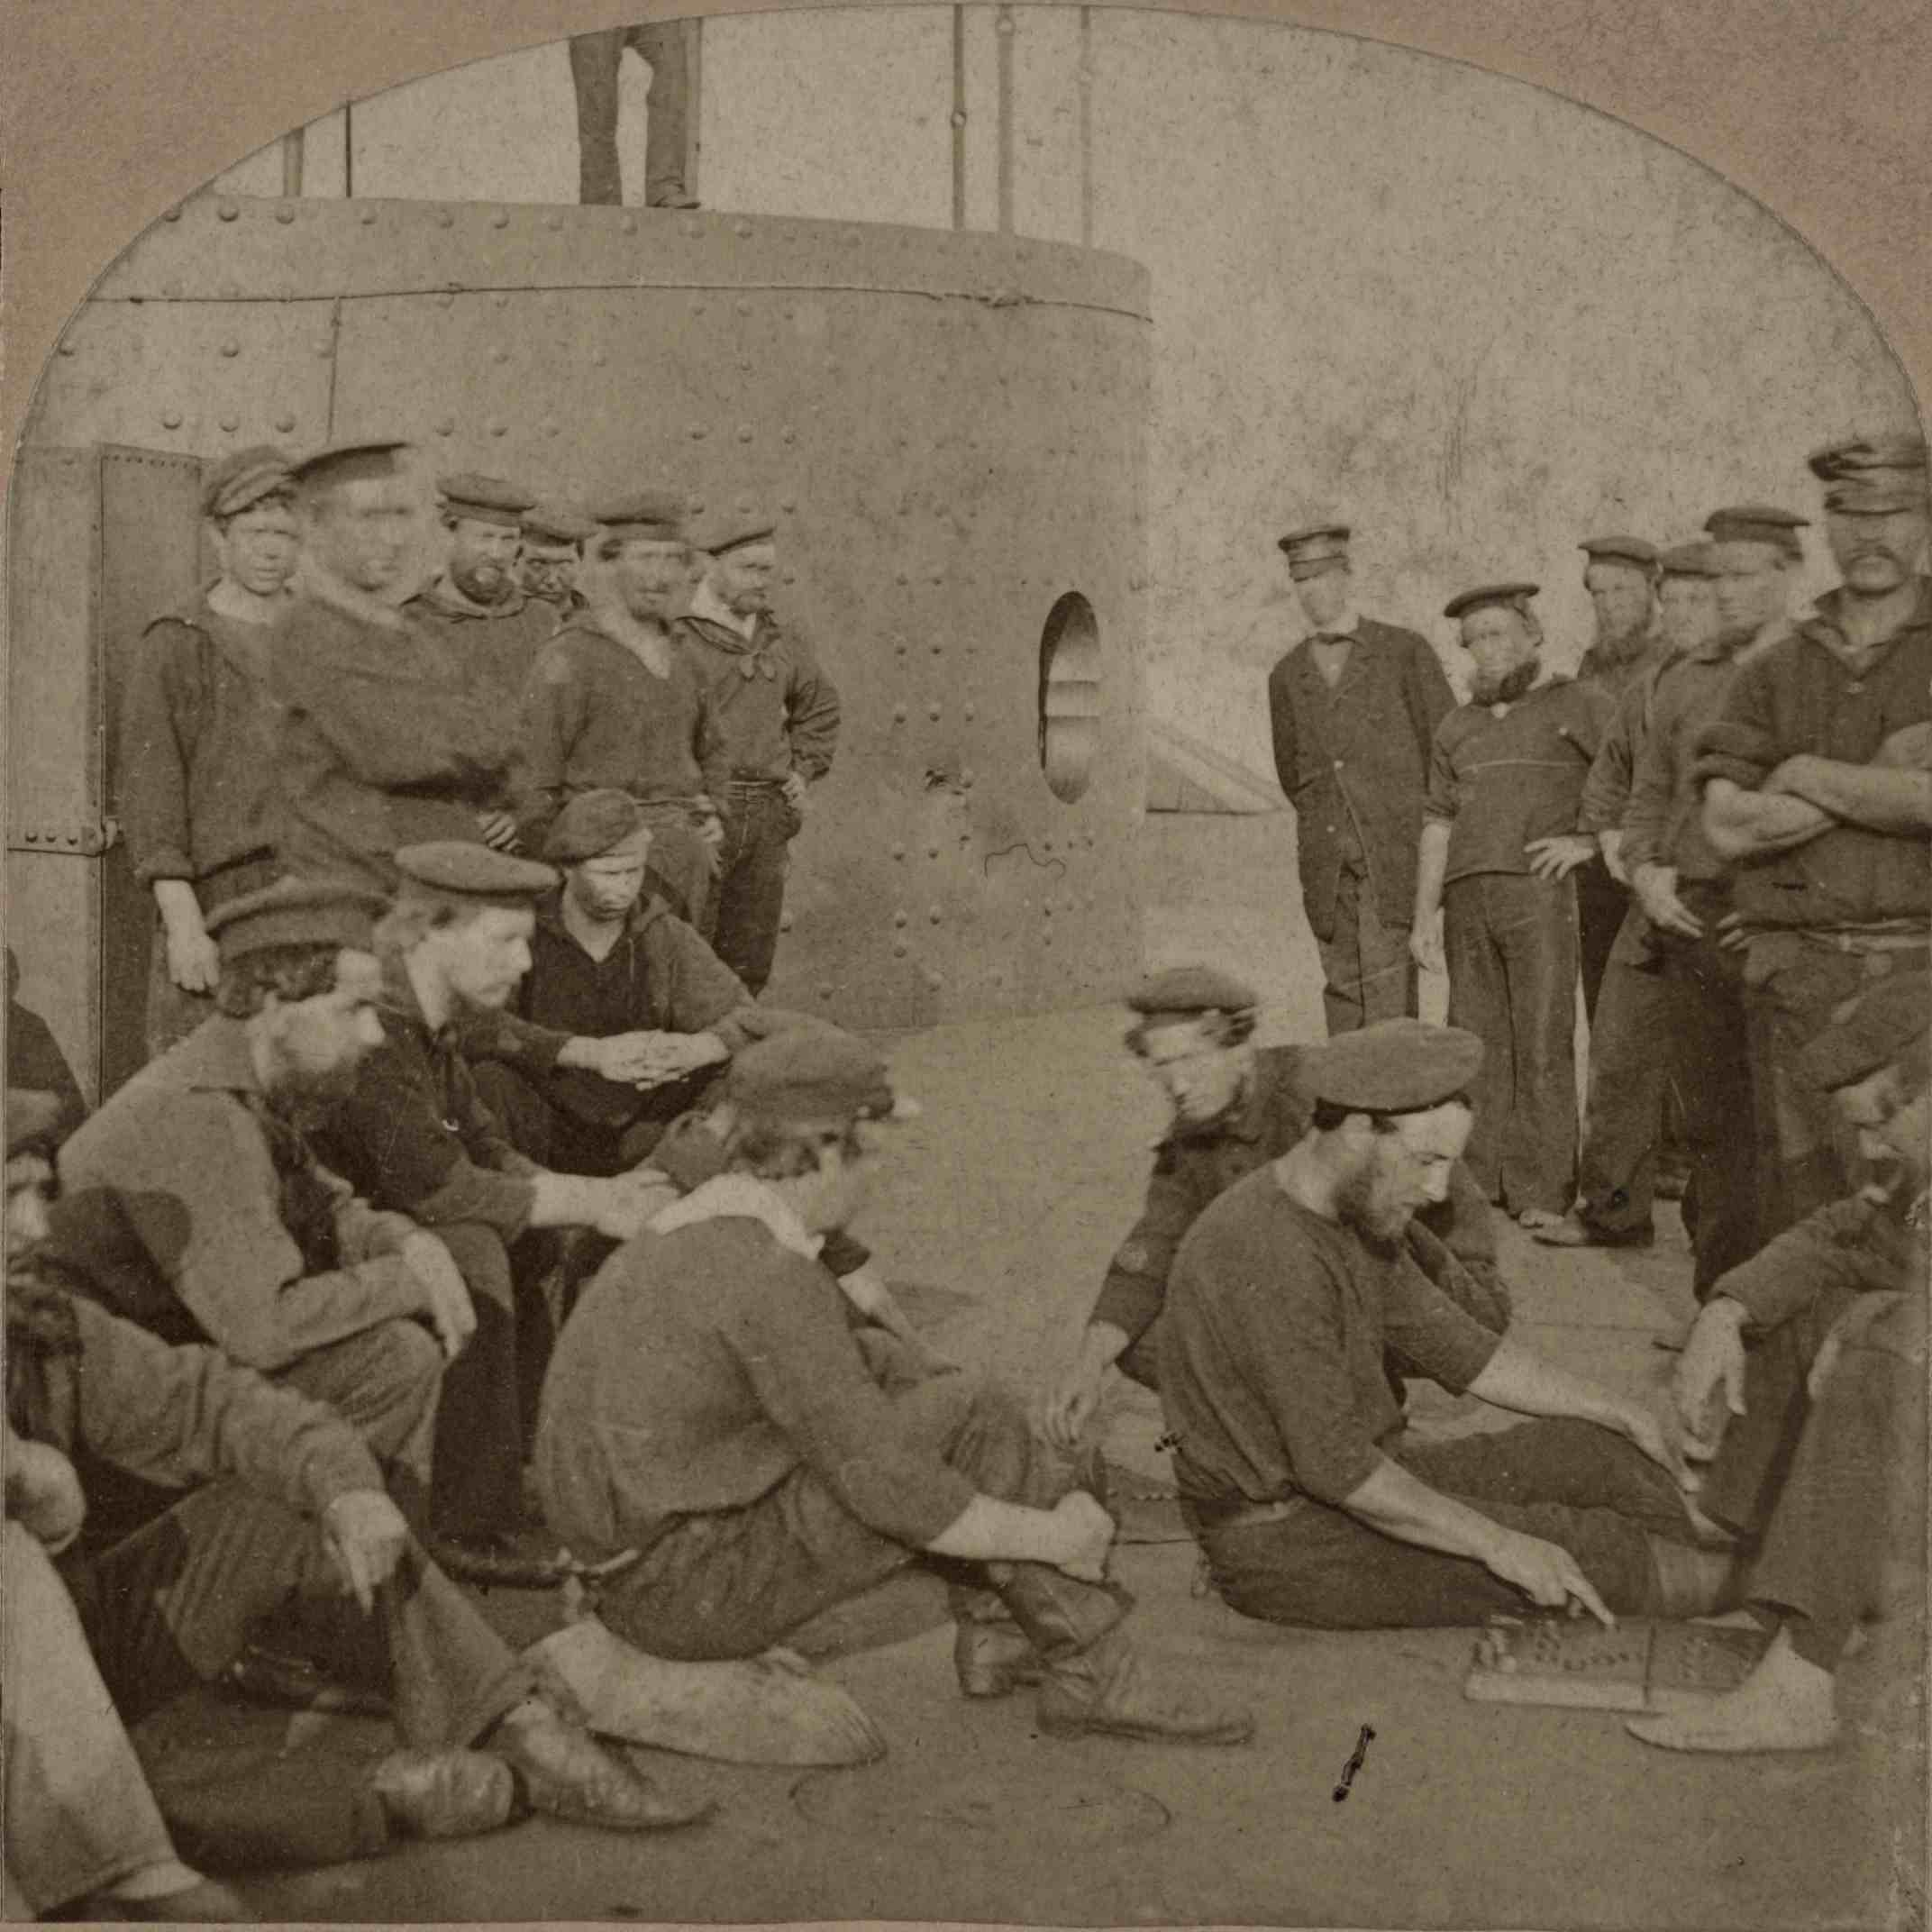 Sailors of the Monitor relaxing on its deck, summer 1862.